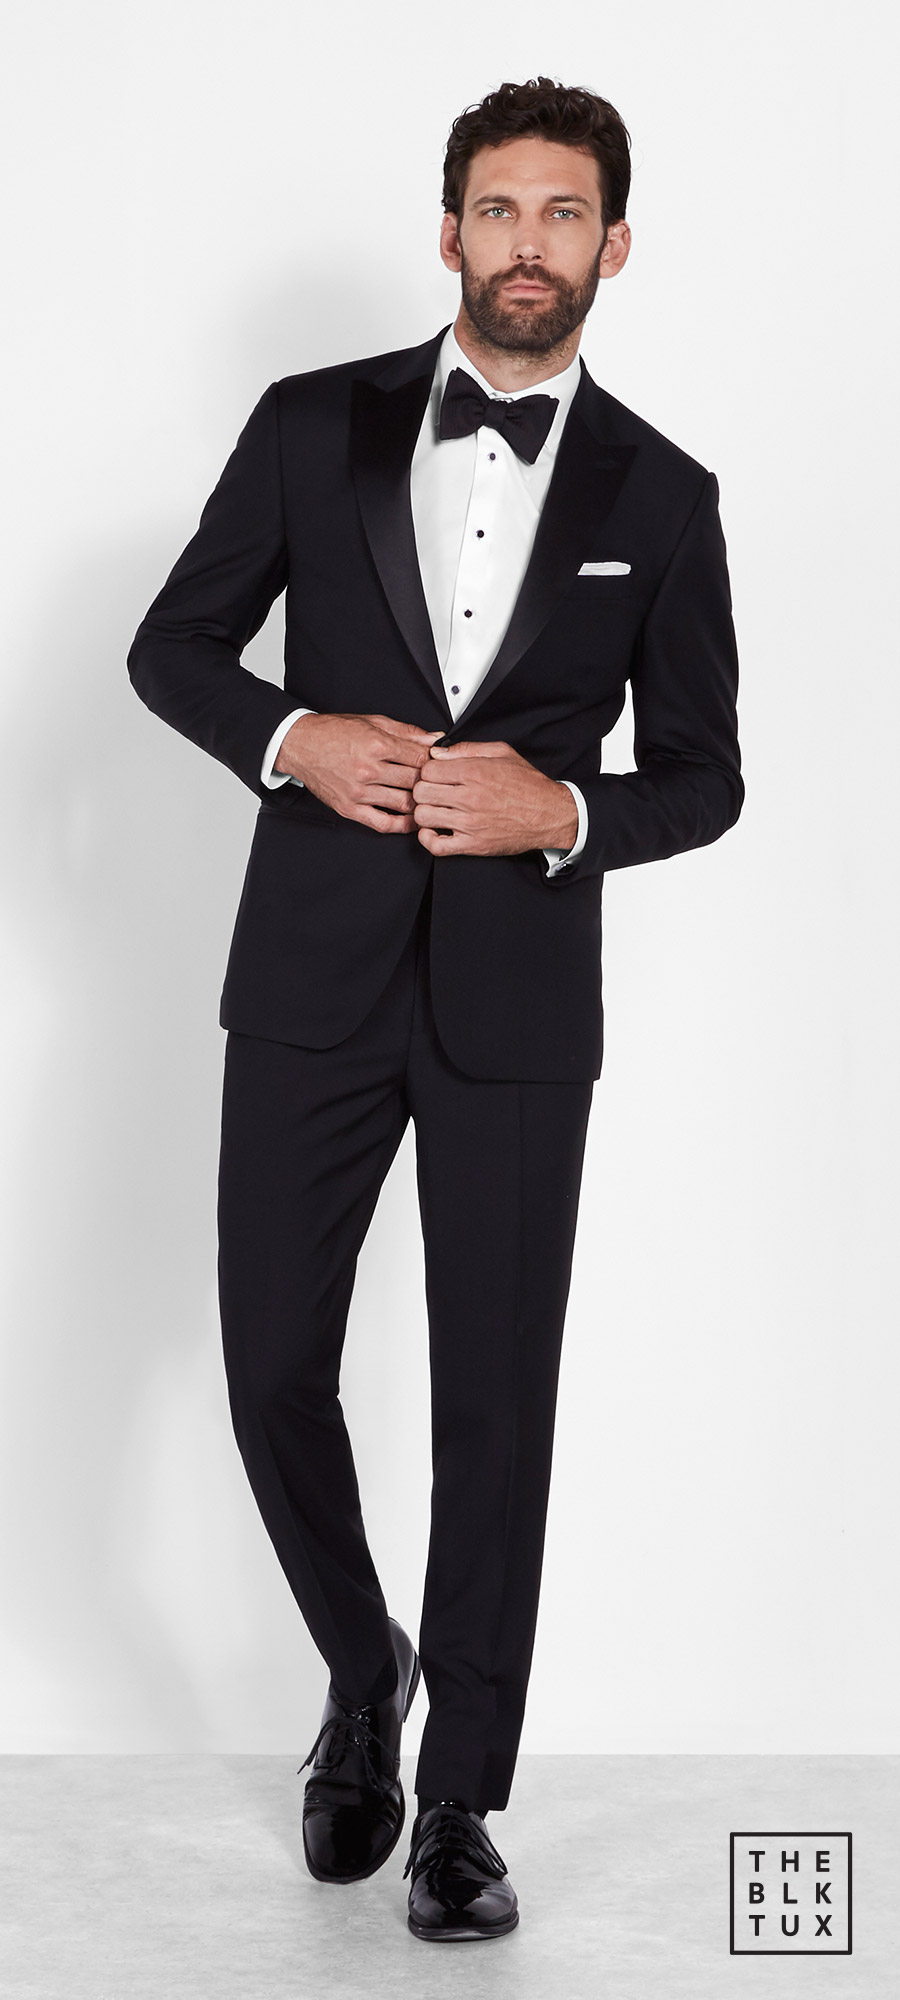 the black tux 2017 online tuxedos rental service the peak lapel tuxedo groommen best man style